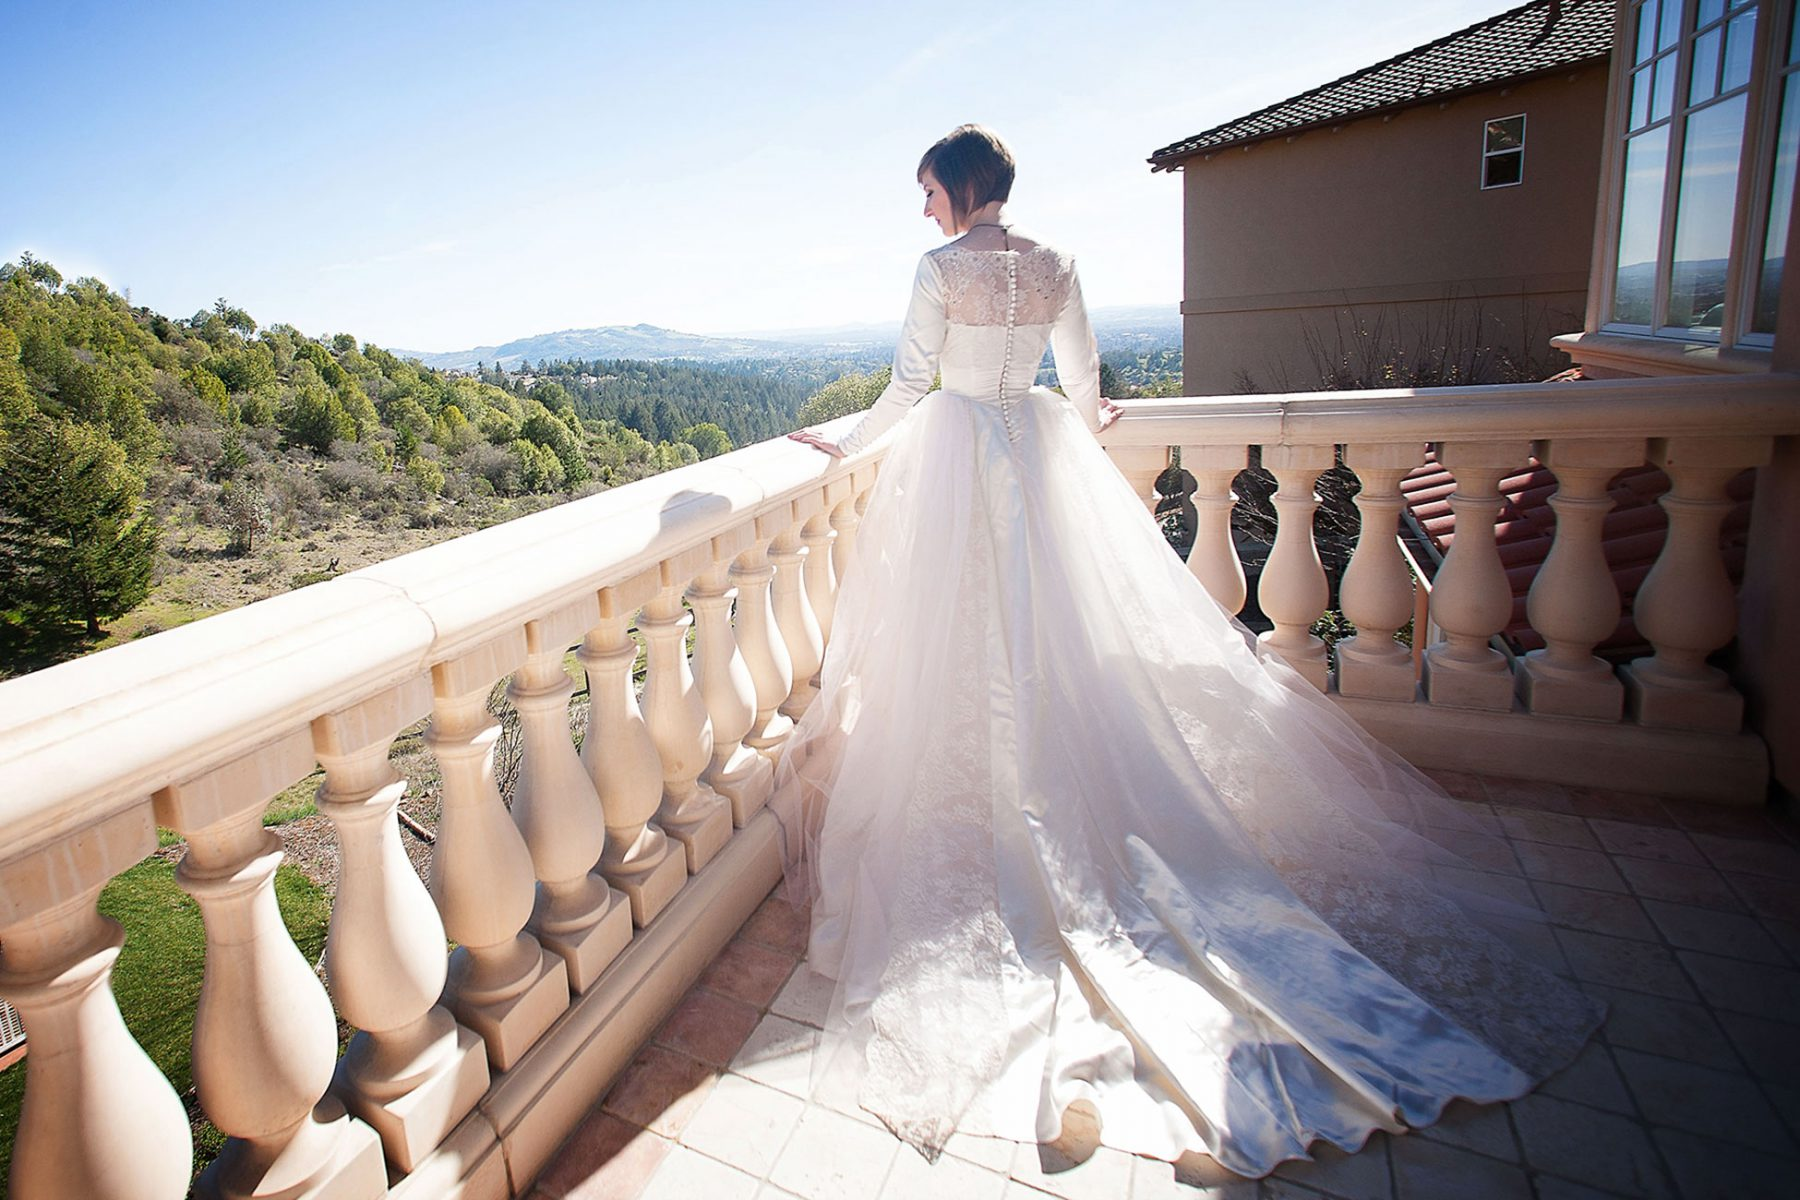 Vintage style hand made wedding gown by Dainty Rascal at a Napa Valley estate wedding by Matthew Leland Photography